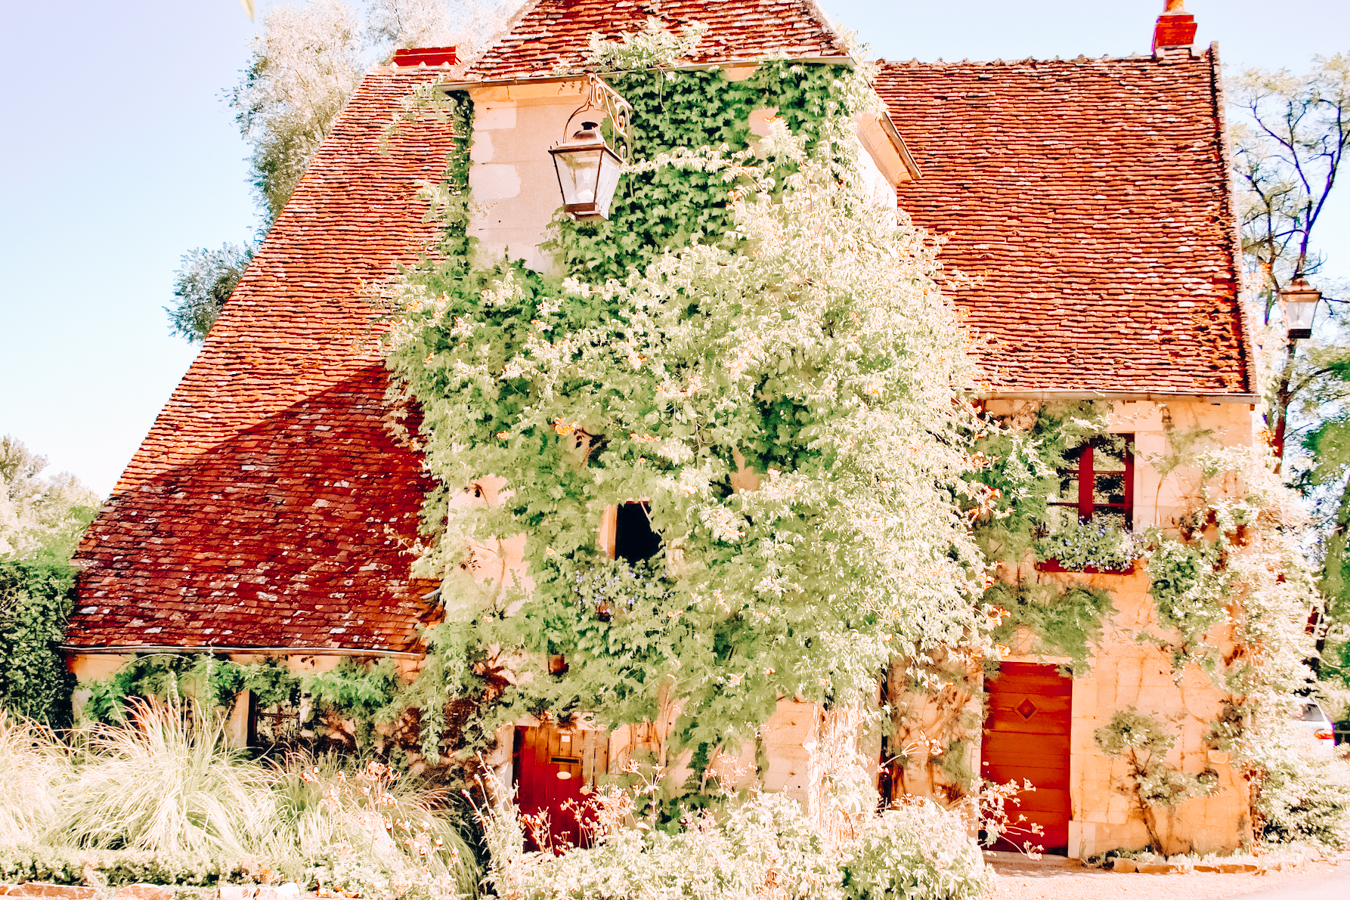 House with leaves